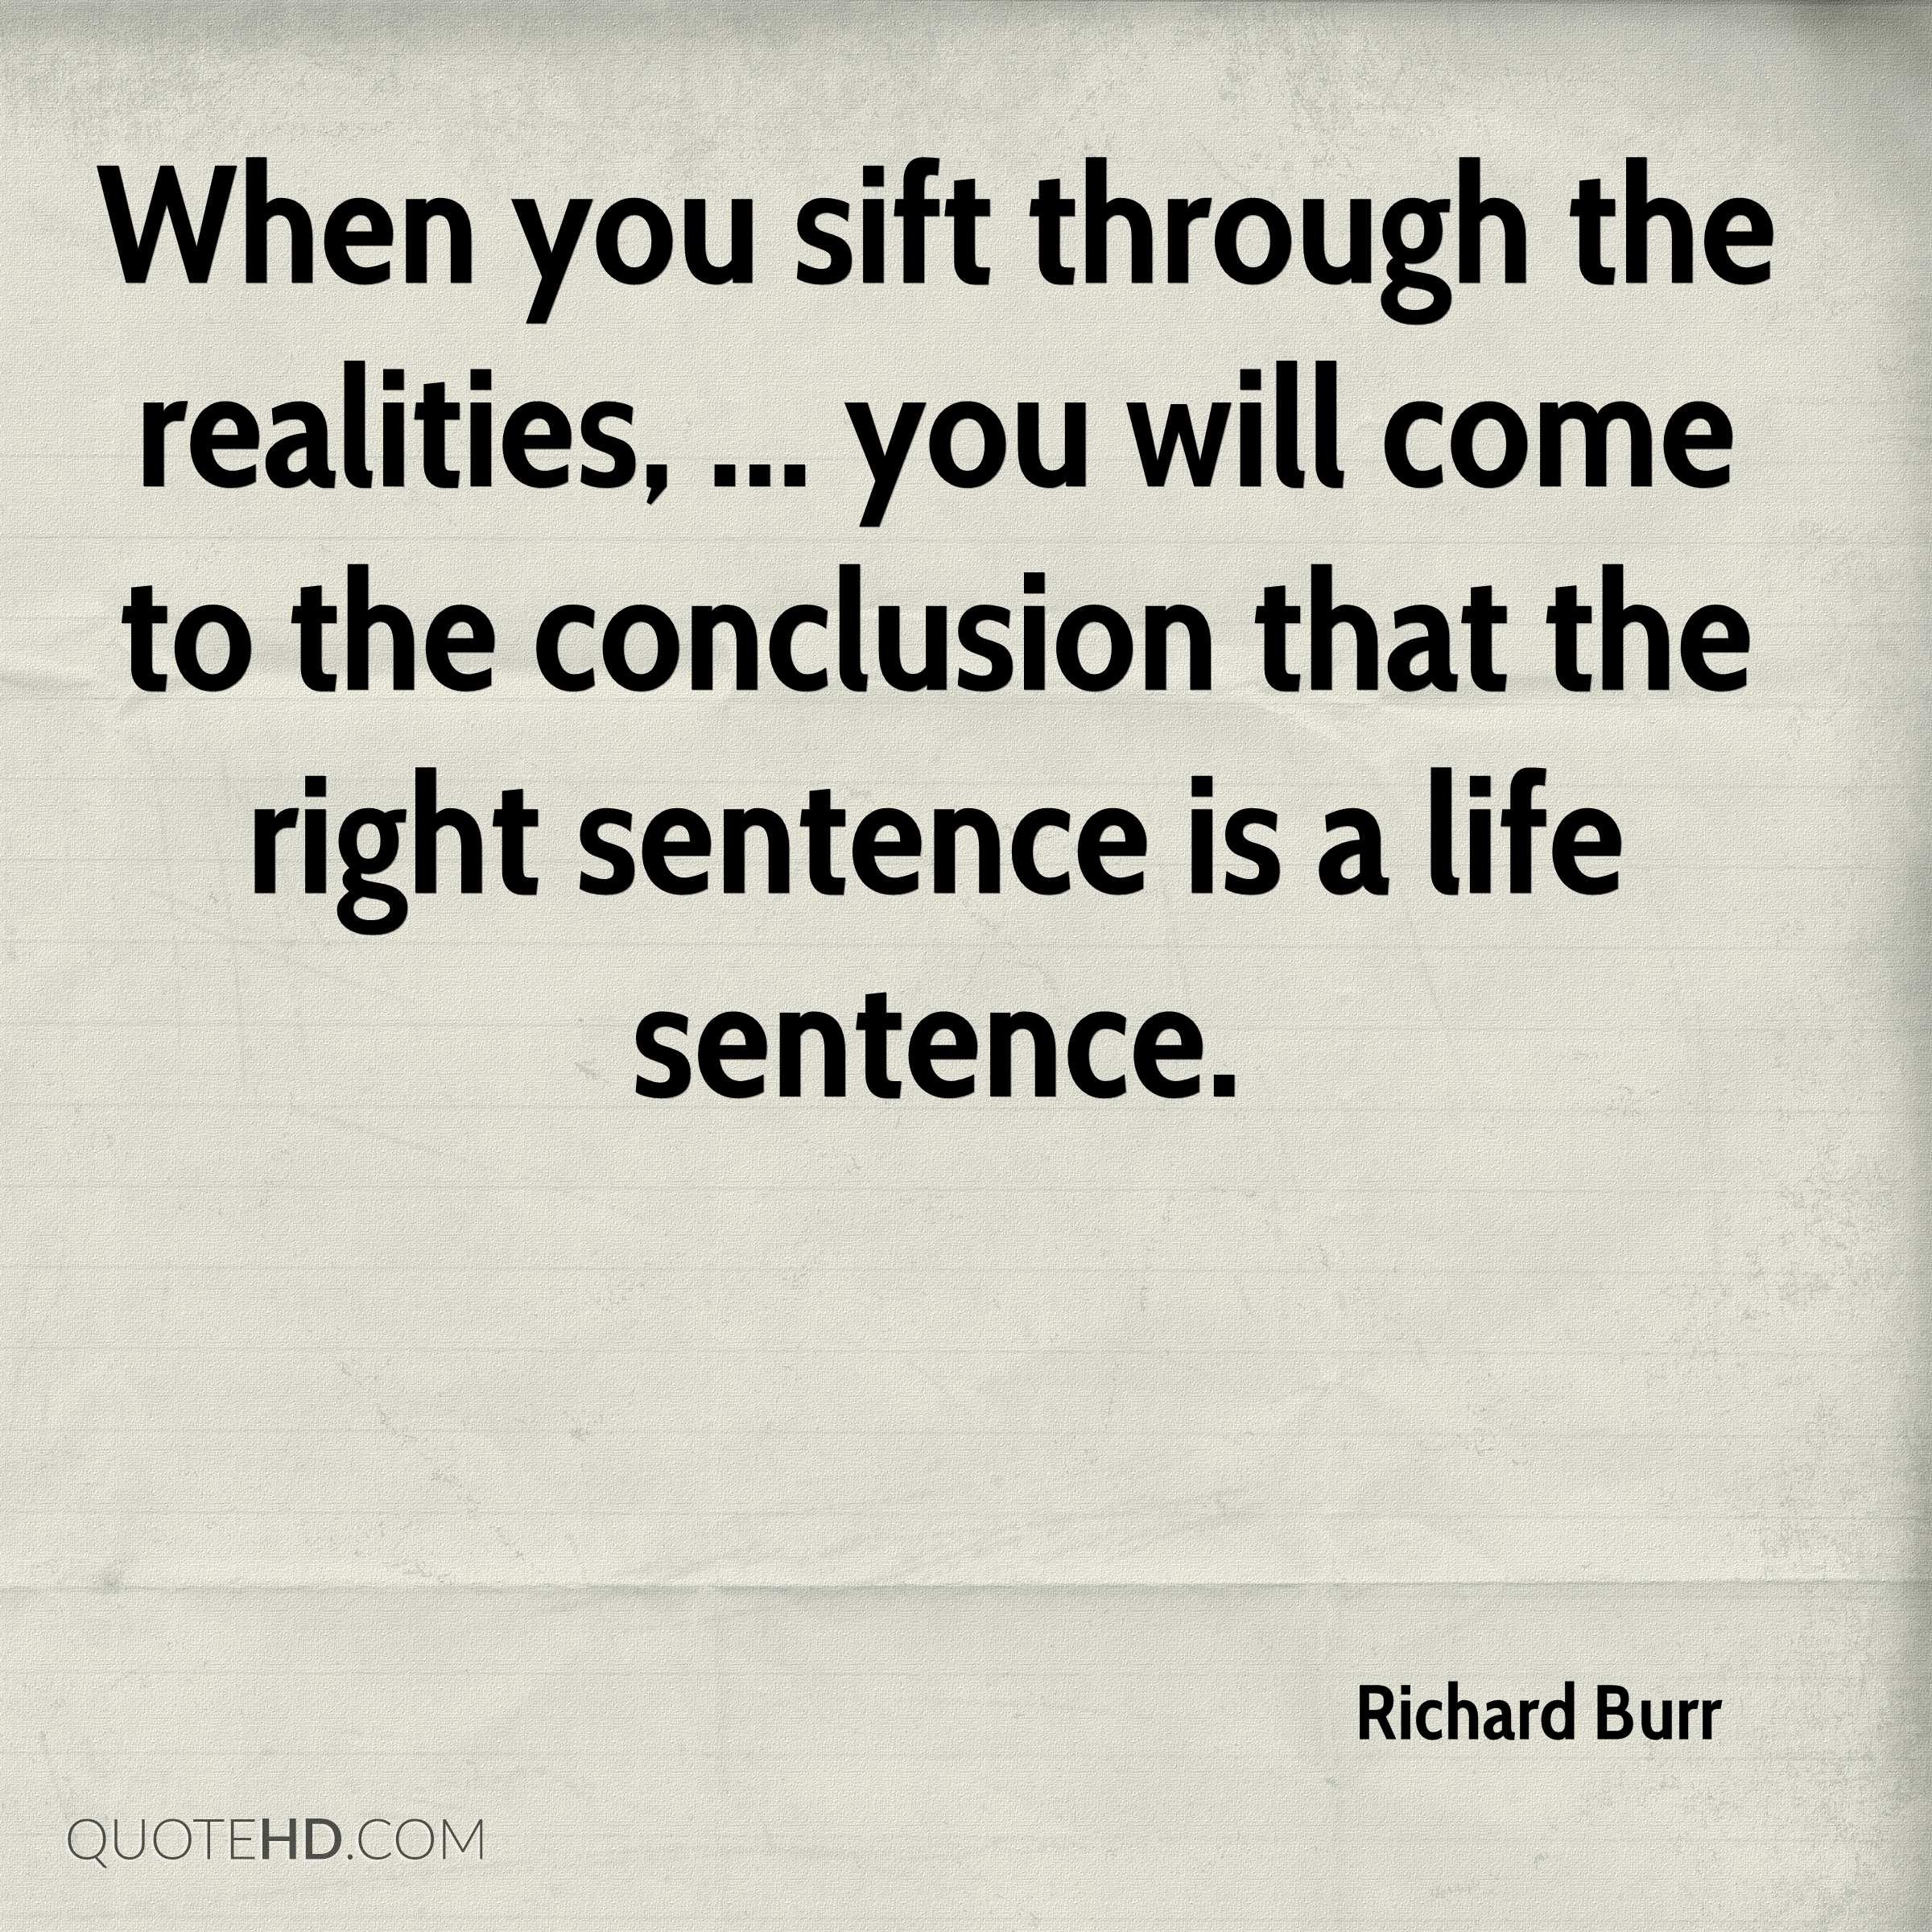 When you sift through the realities, ... you will come to the conclusion that the right sentence is a life sentence.